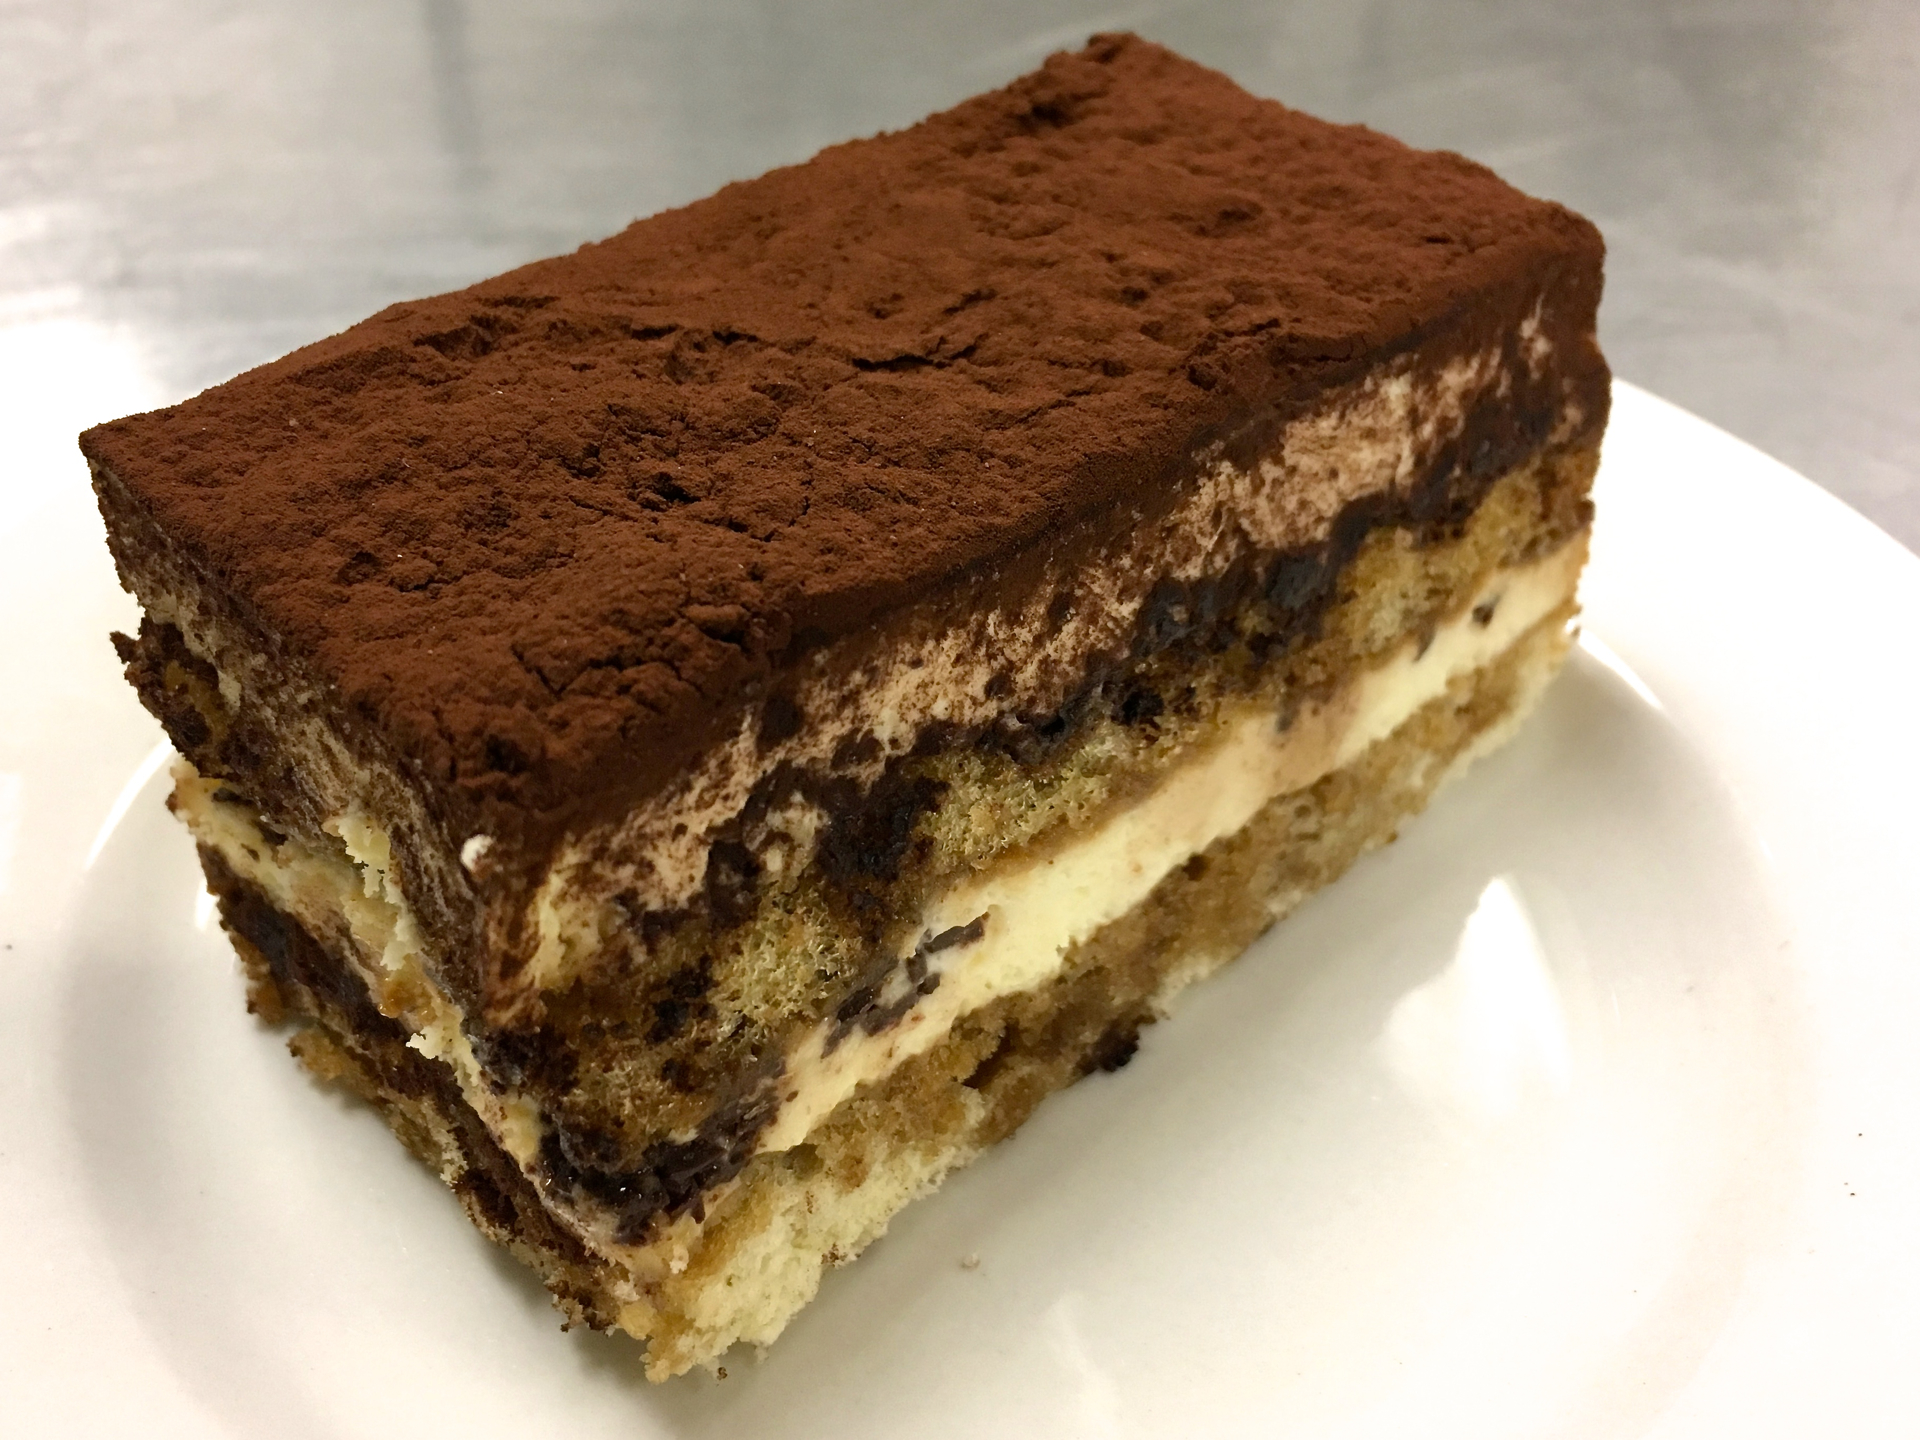 A tiramisu pastry from La Patisserie Bakery.